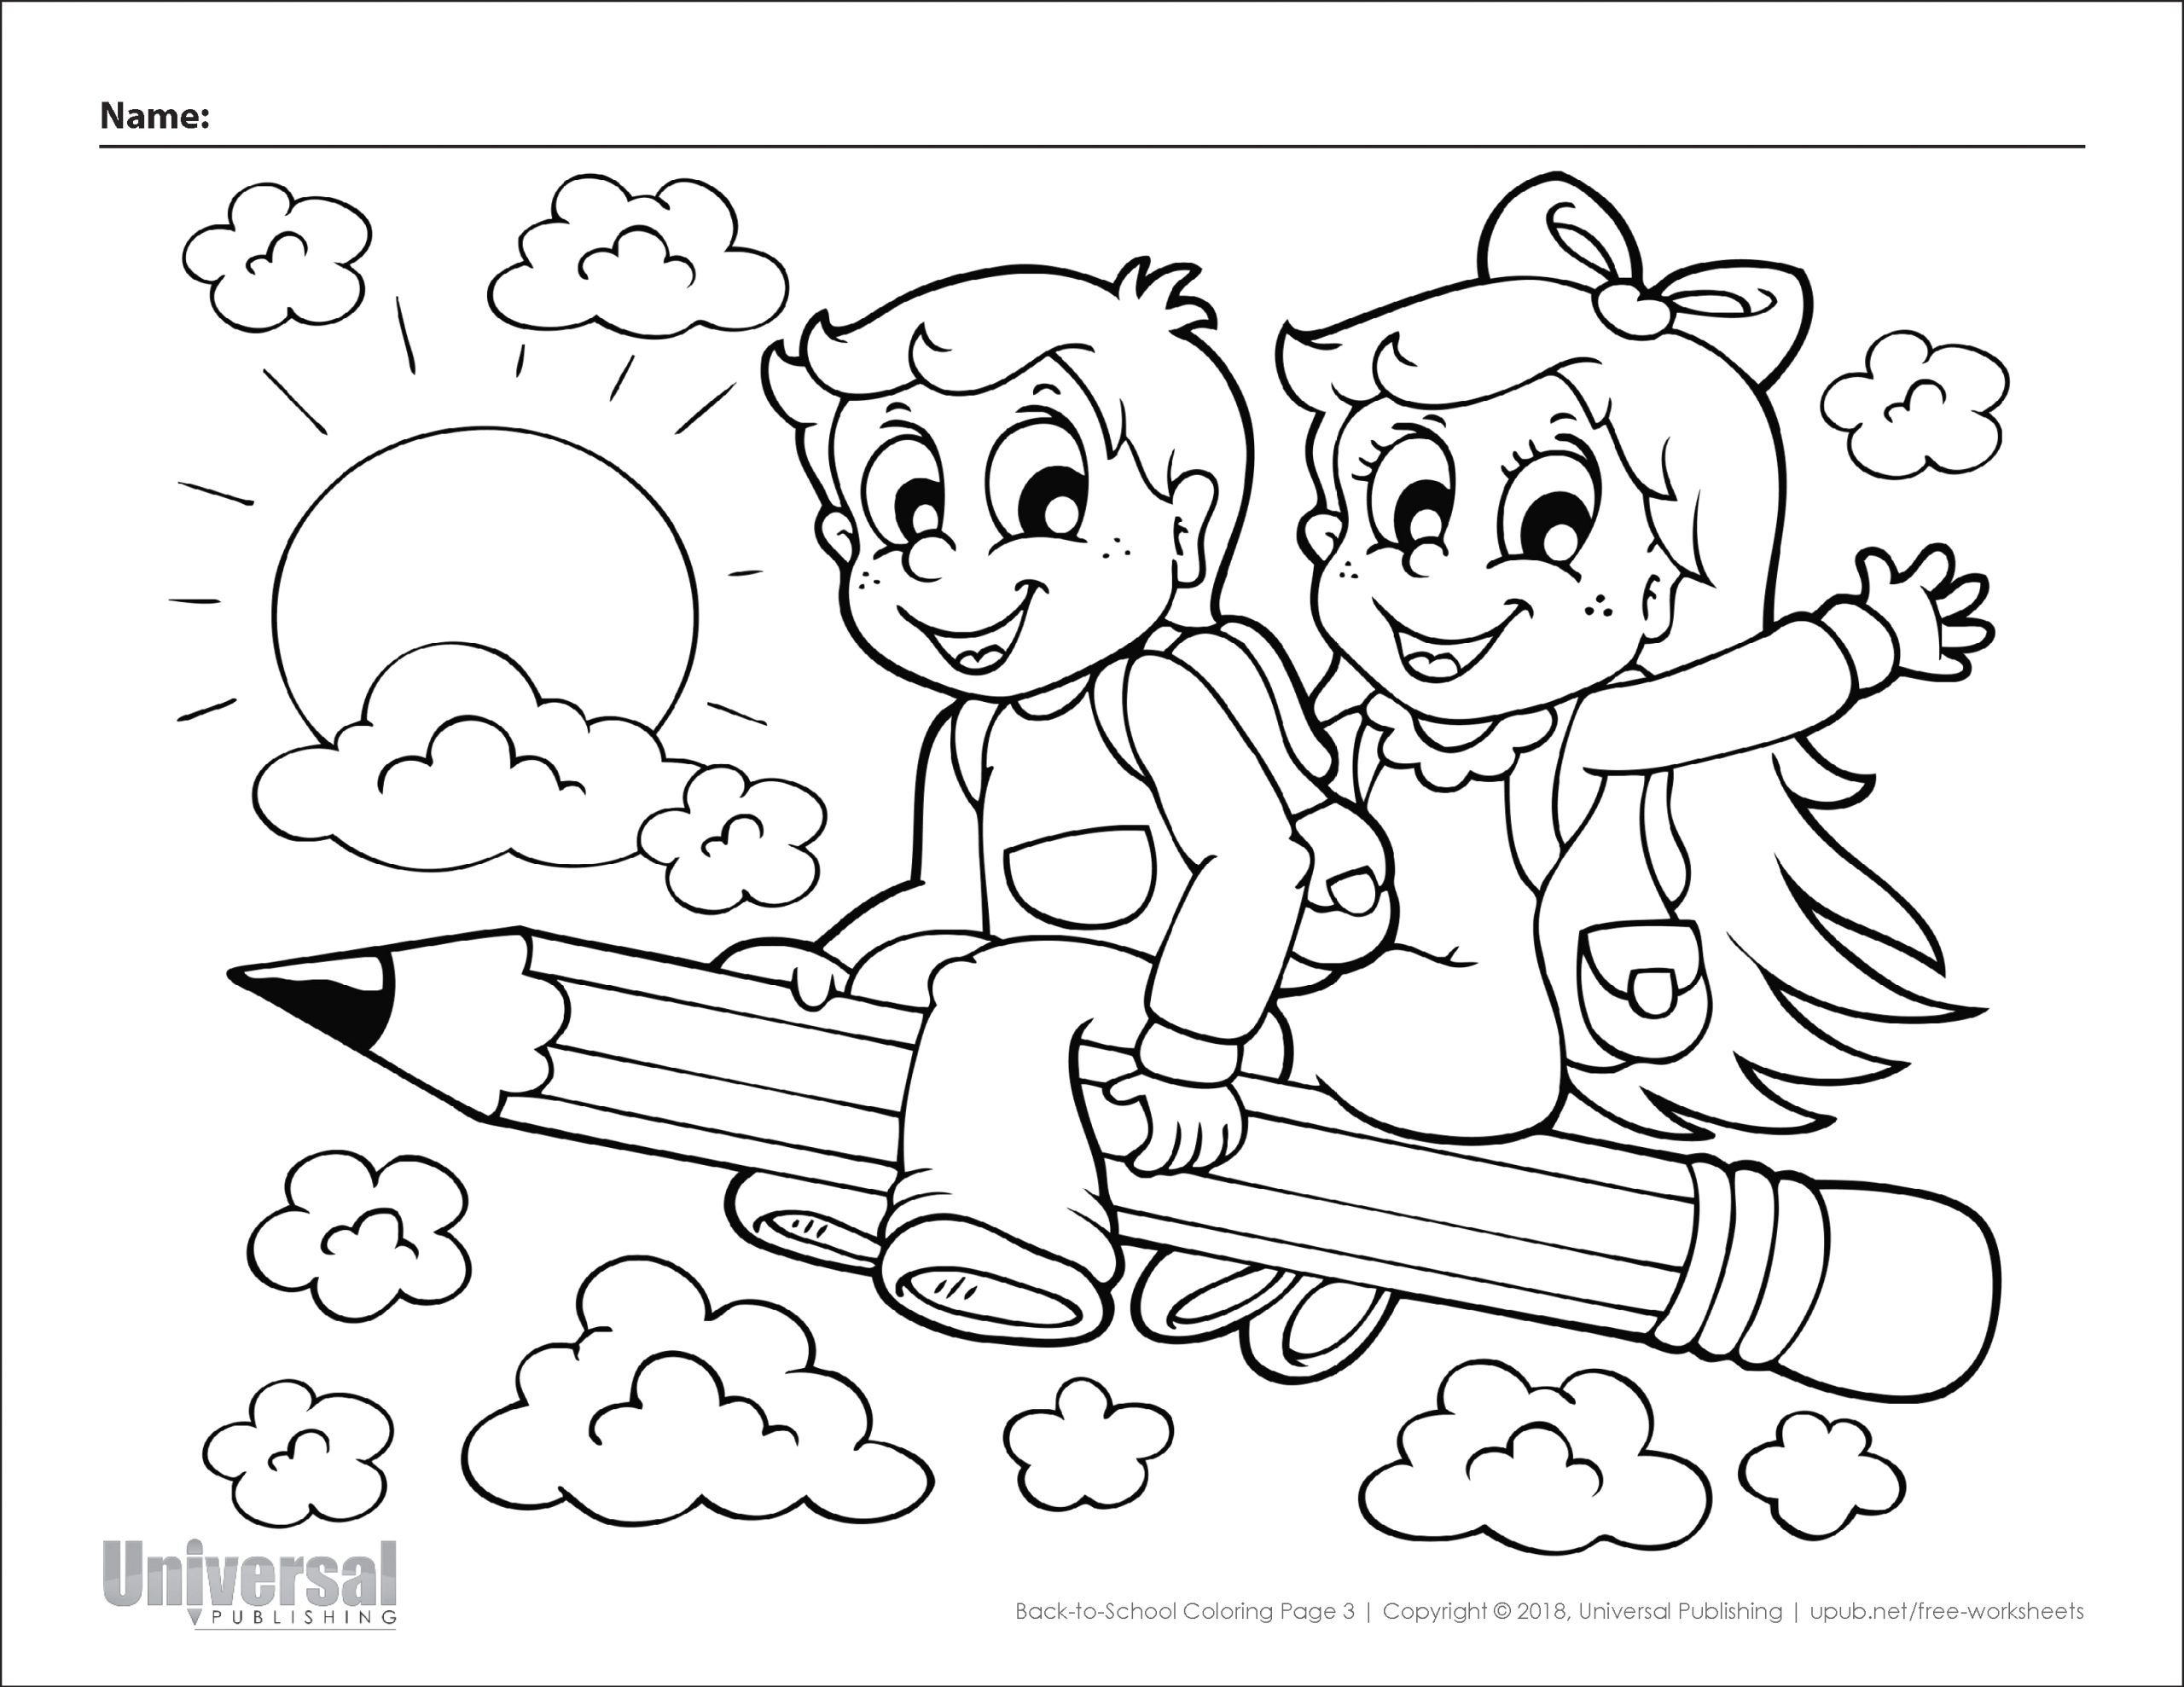 Coloring Pages for Back to School Preschoolers Back to School Coloring Pages